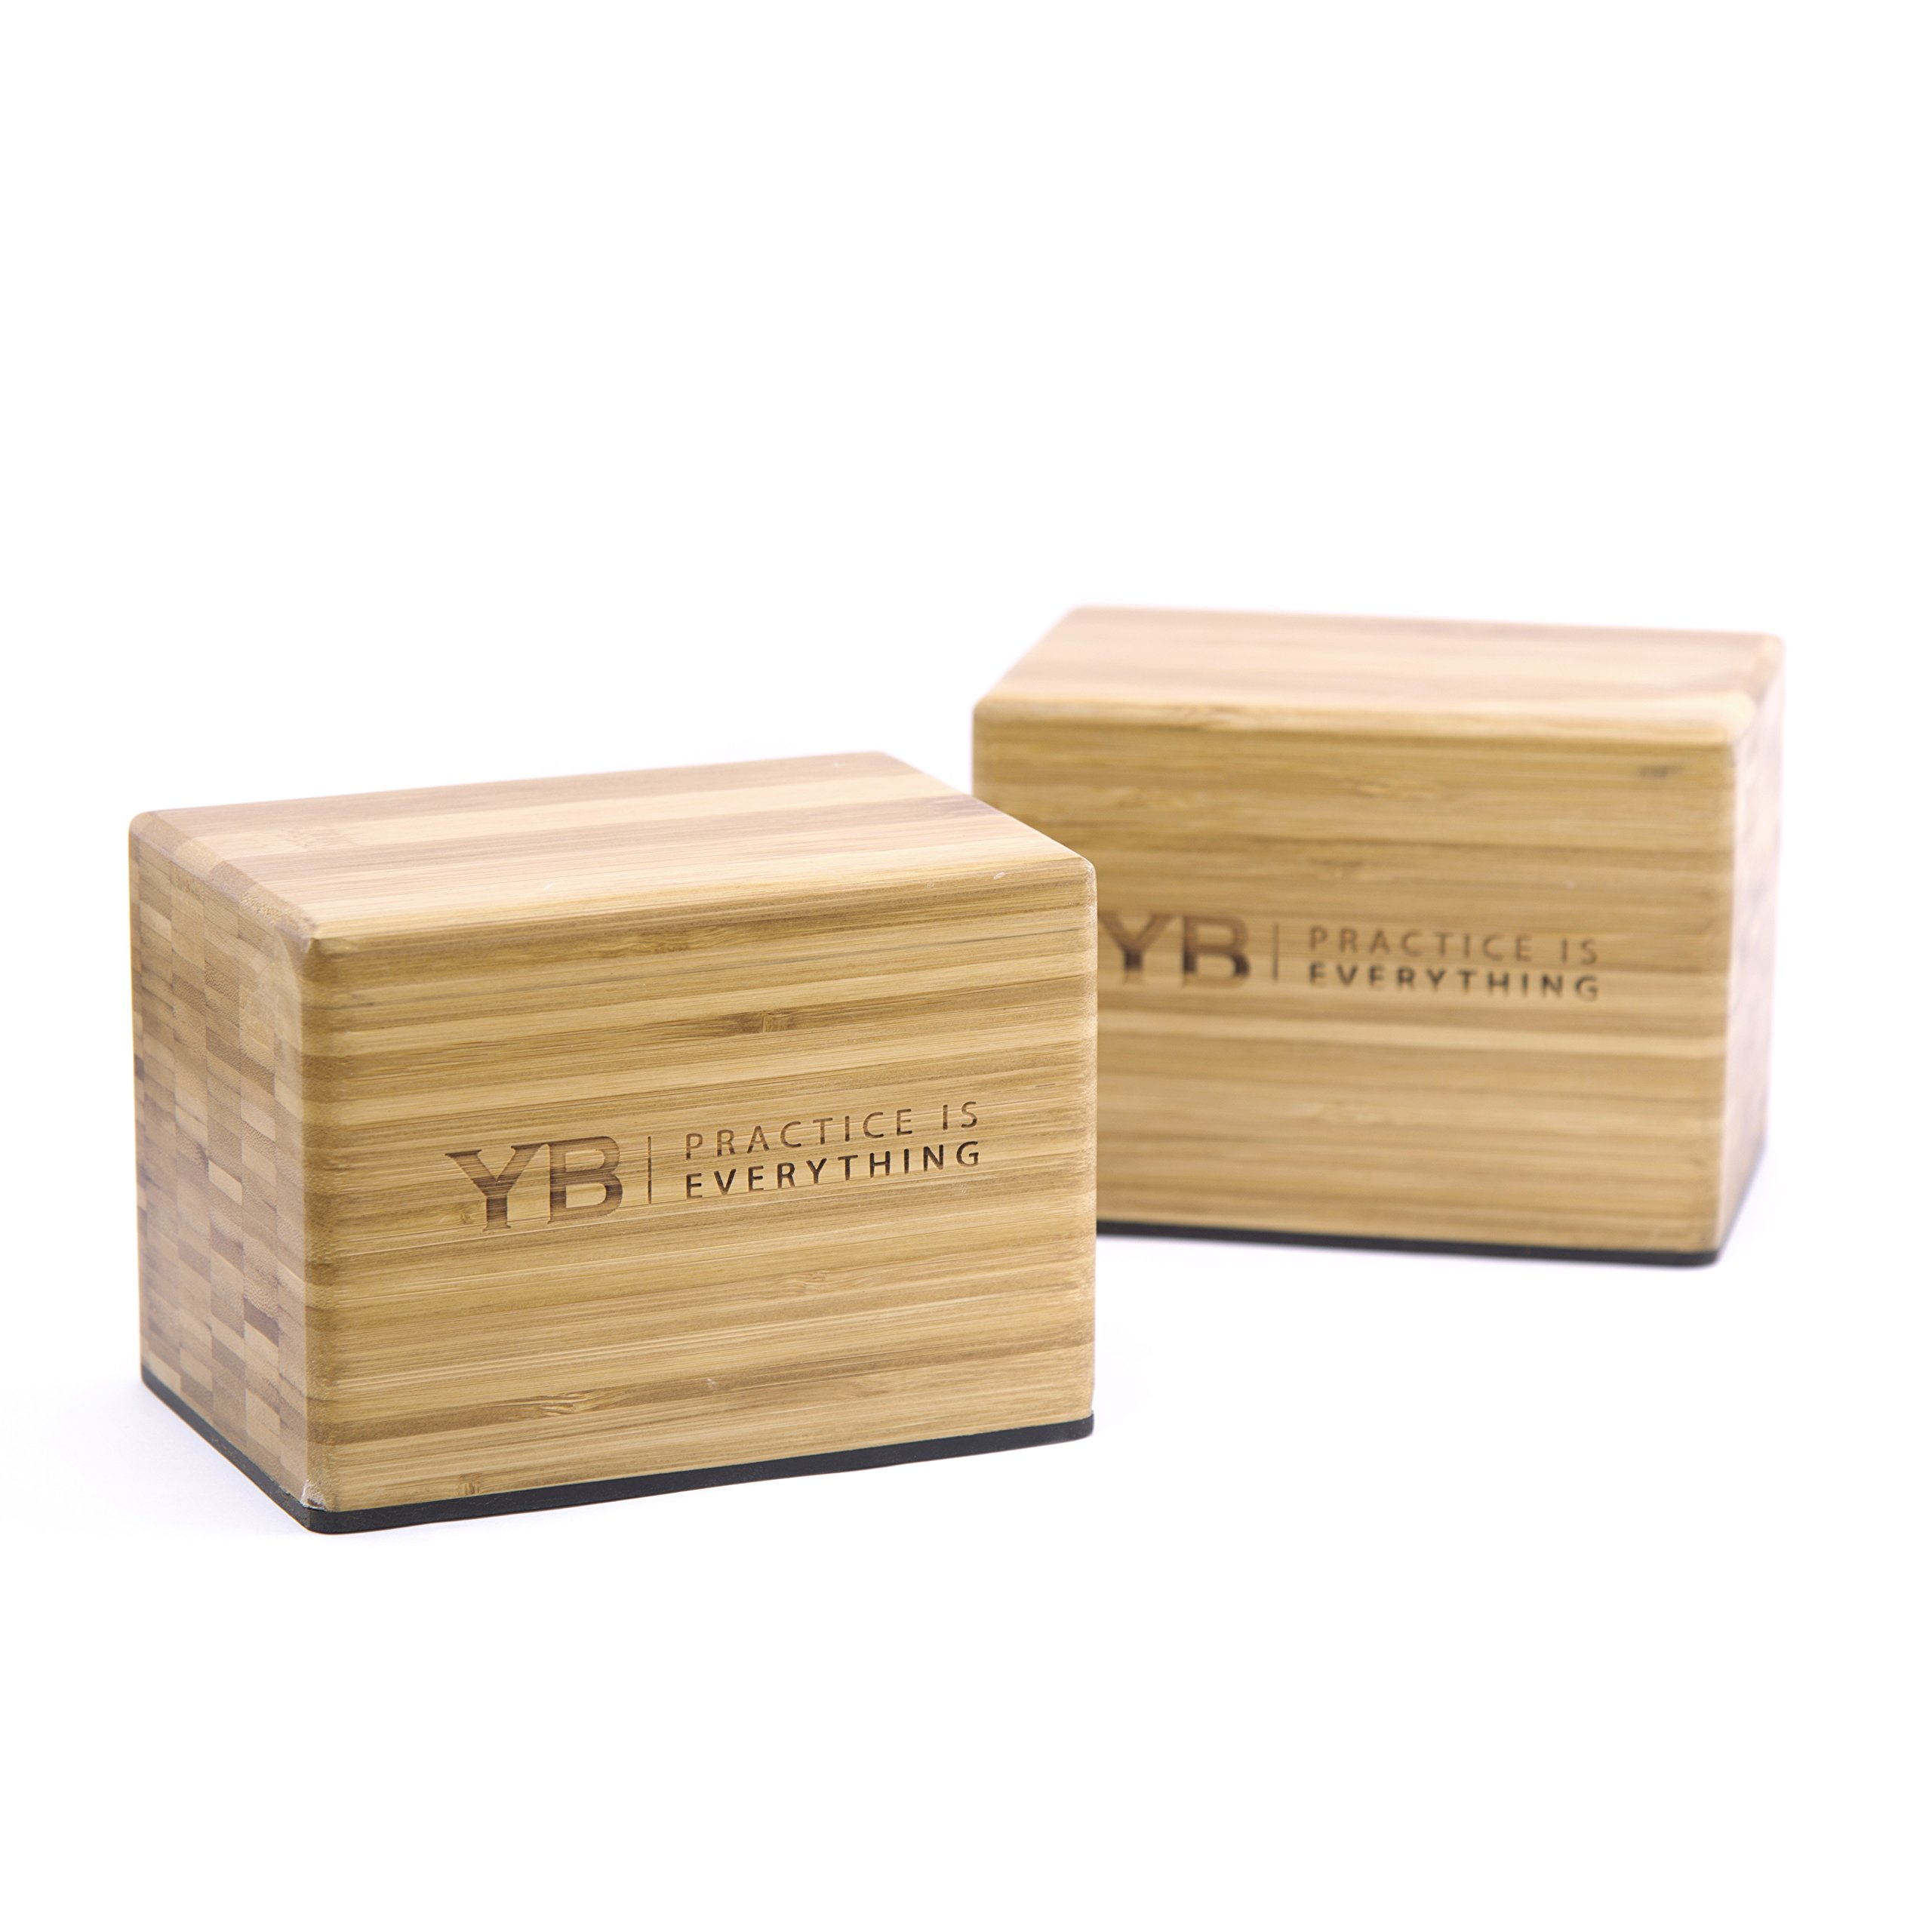 YOGABODY Bamboo Handstand Blocks with Non-Slip Rubber Bottoms, Yoga, Movement and Gymnastics Training with PDF Pose Chart